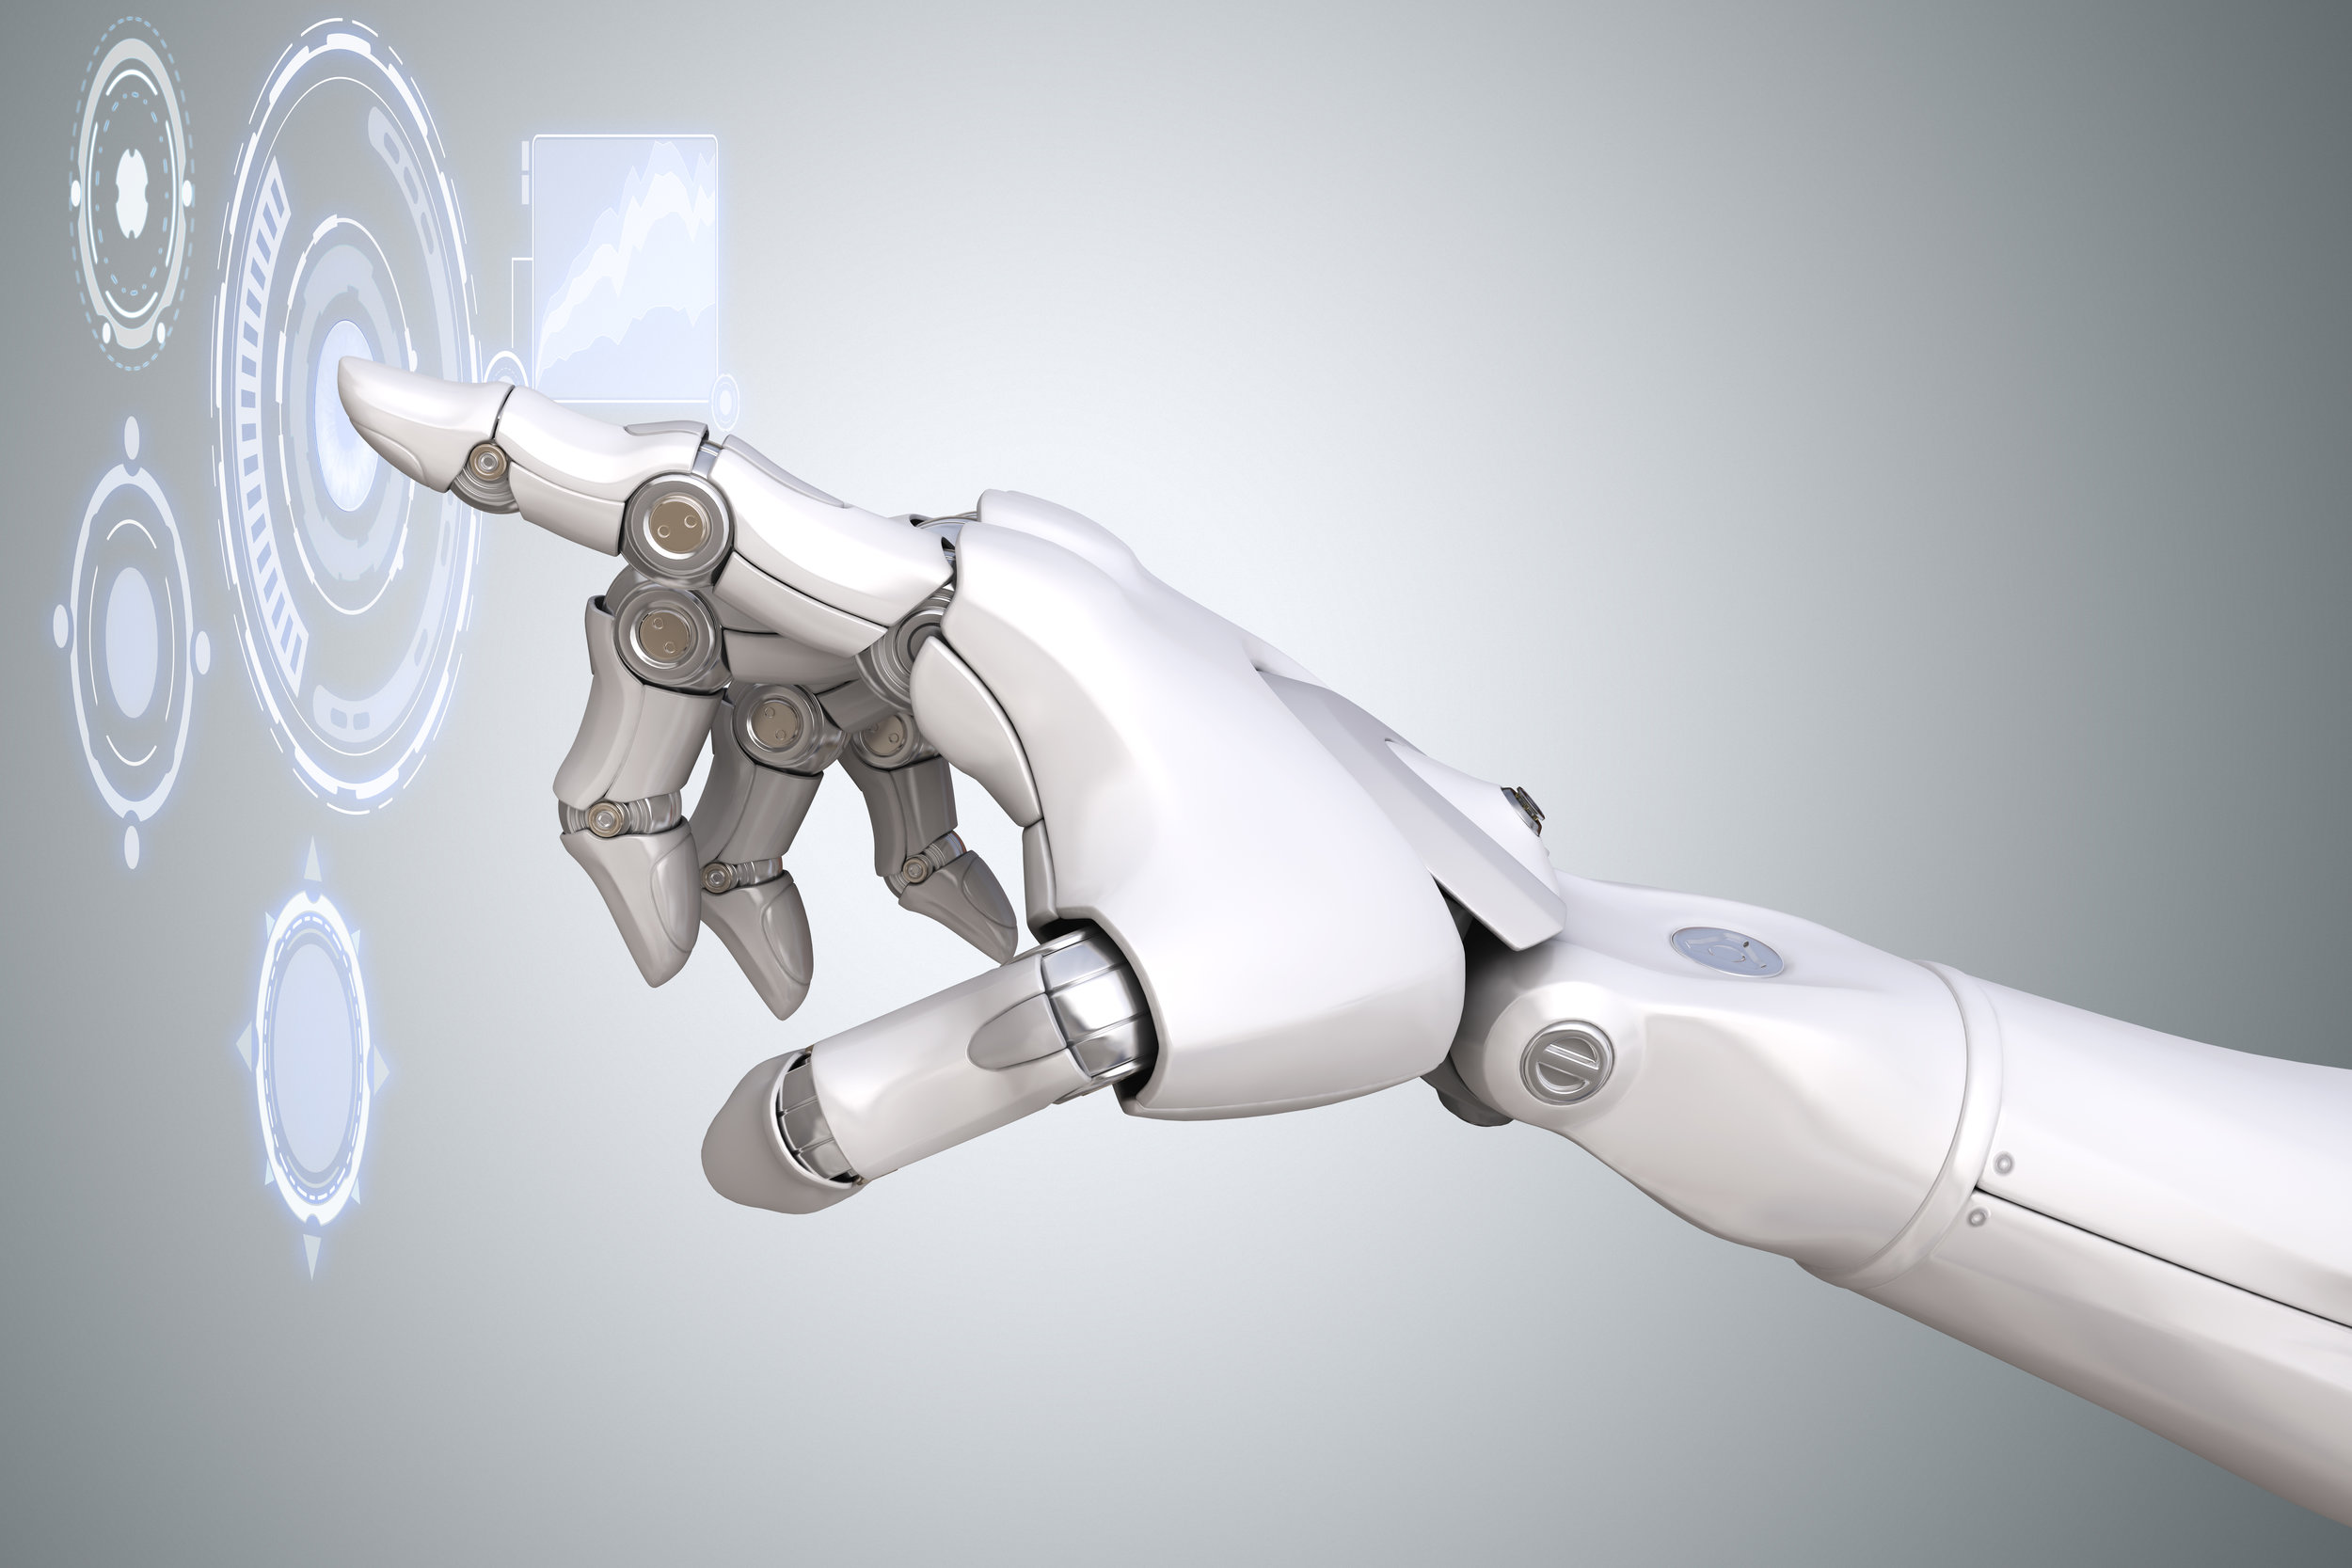 robots-arm-working-with-virtual-reality.jpg